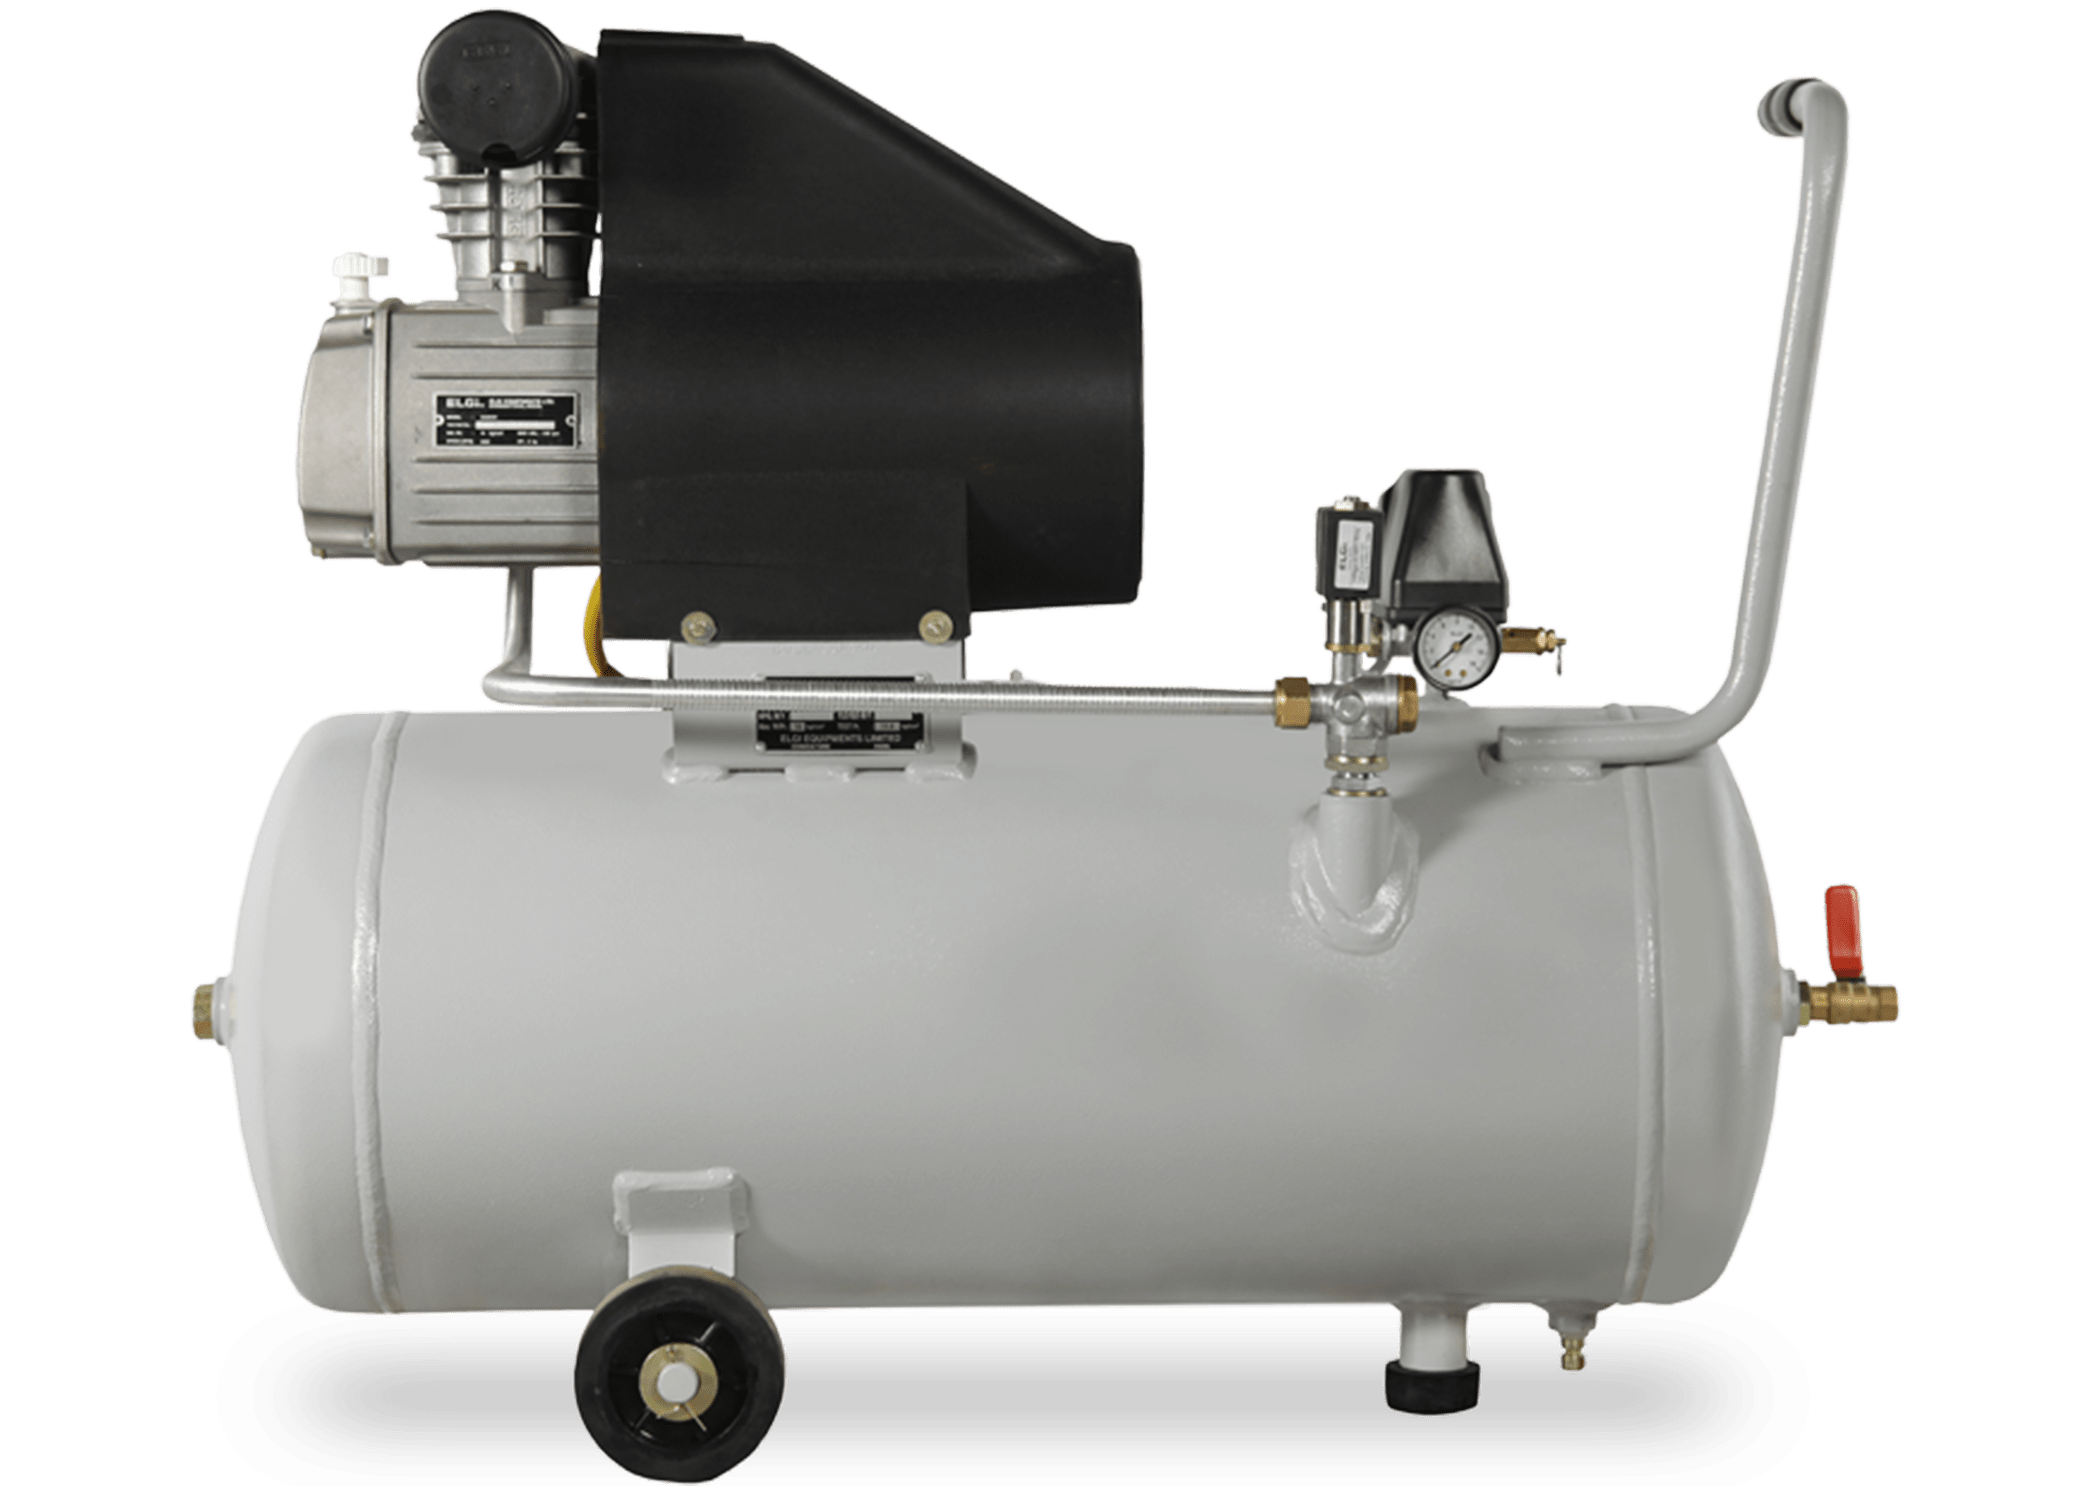 air compressor for cycle shops and garages